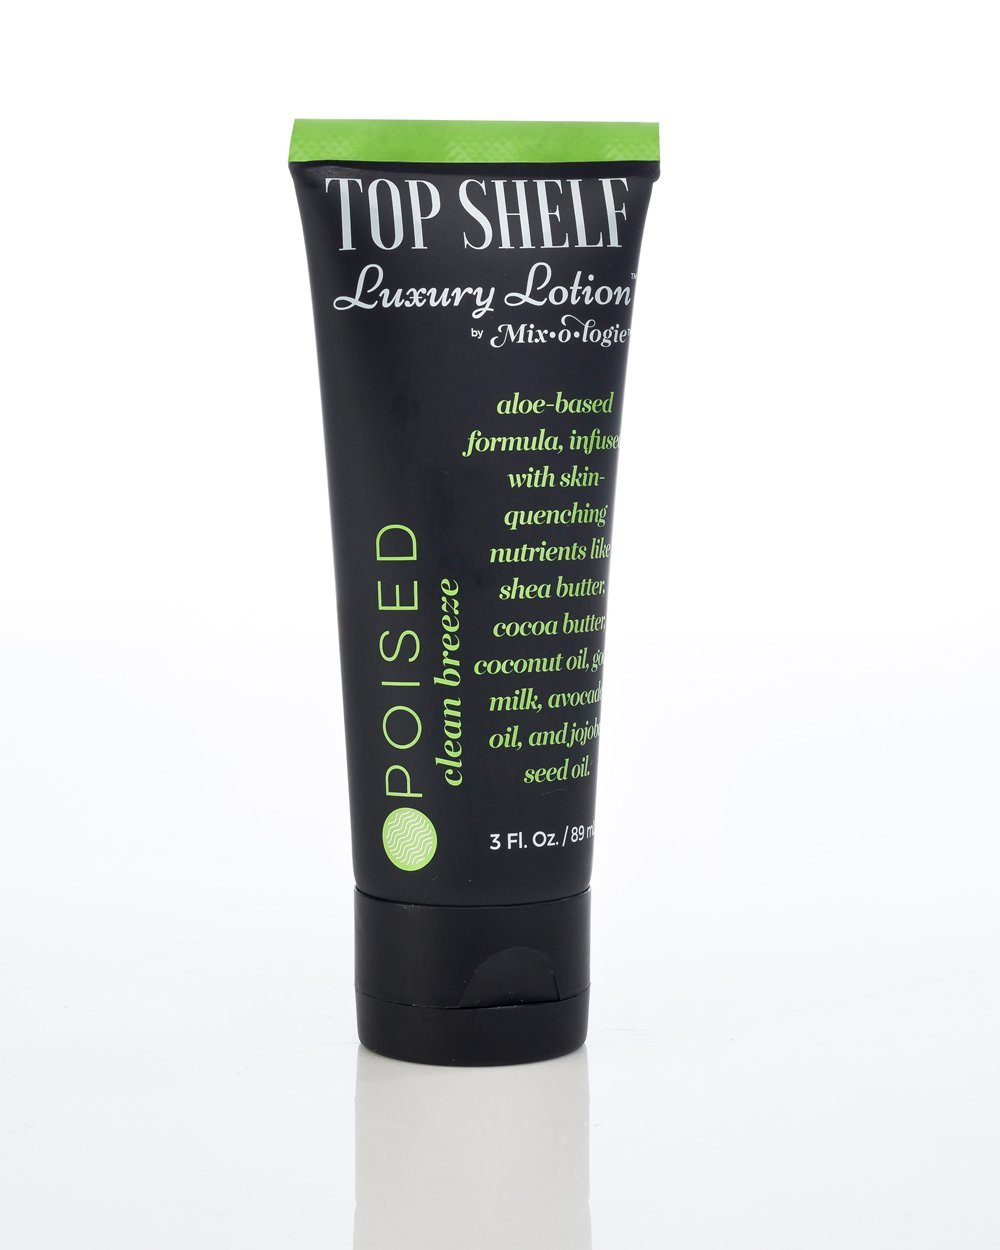 Poised Clean Breeze Top Shelf Lotion